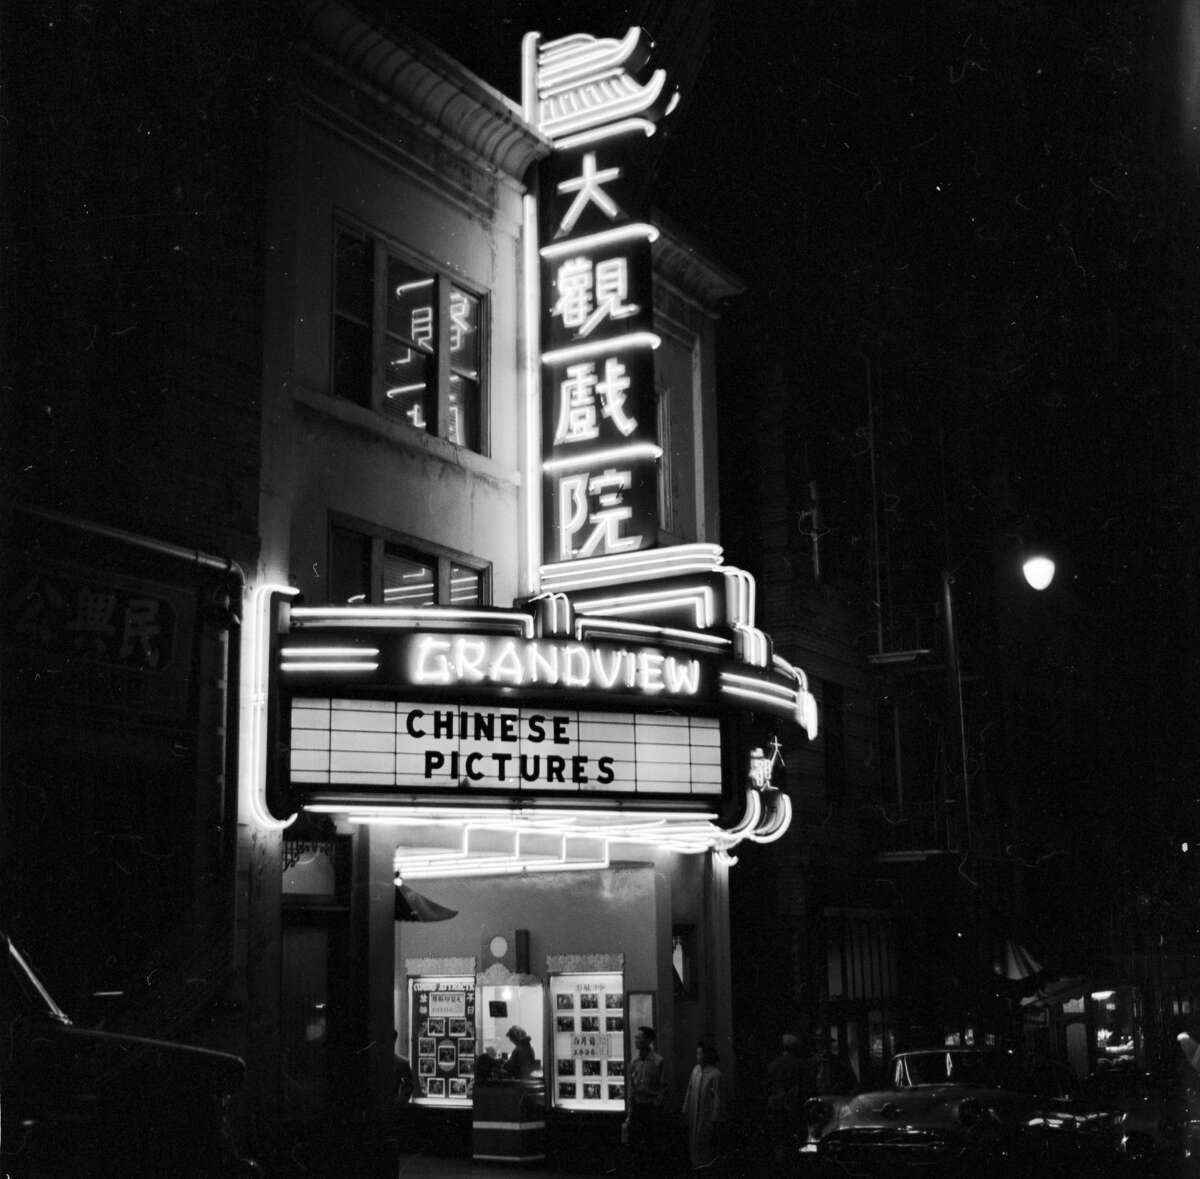 The Grandview Theatre in Chinatown, San Francisco, which showed Chinese films imported from Hong Kong, circa 1955.